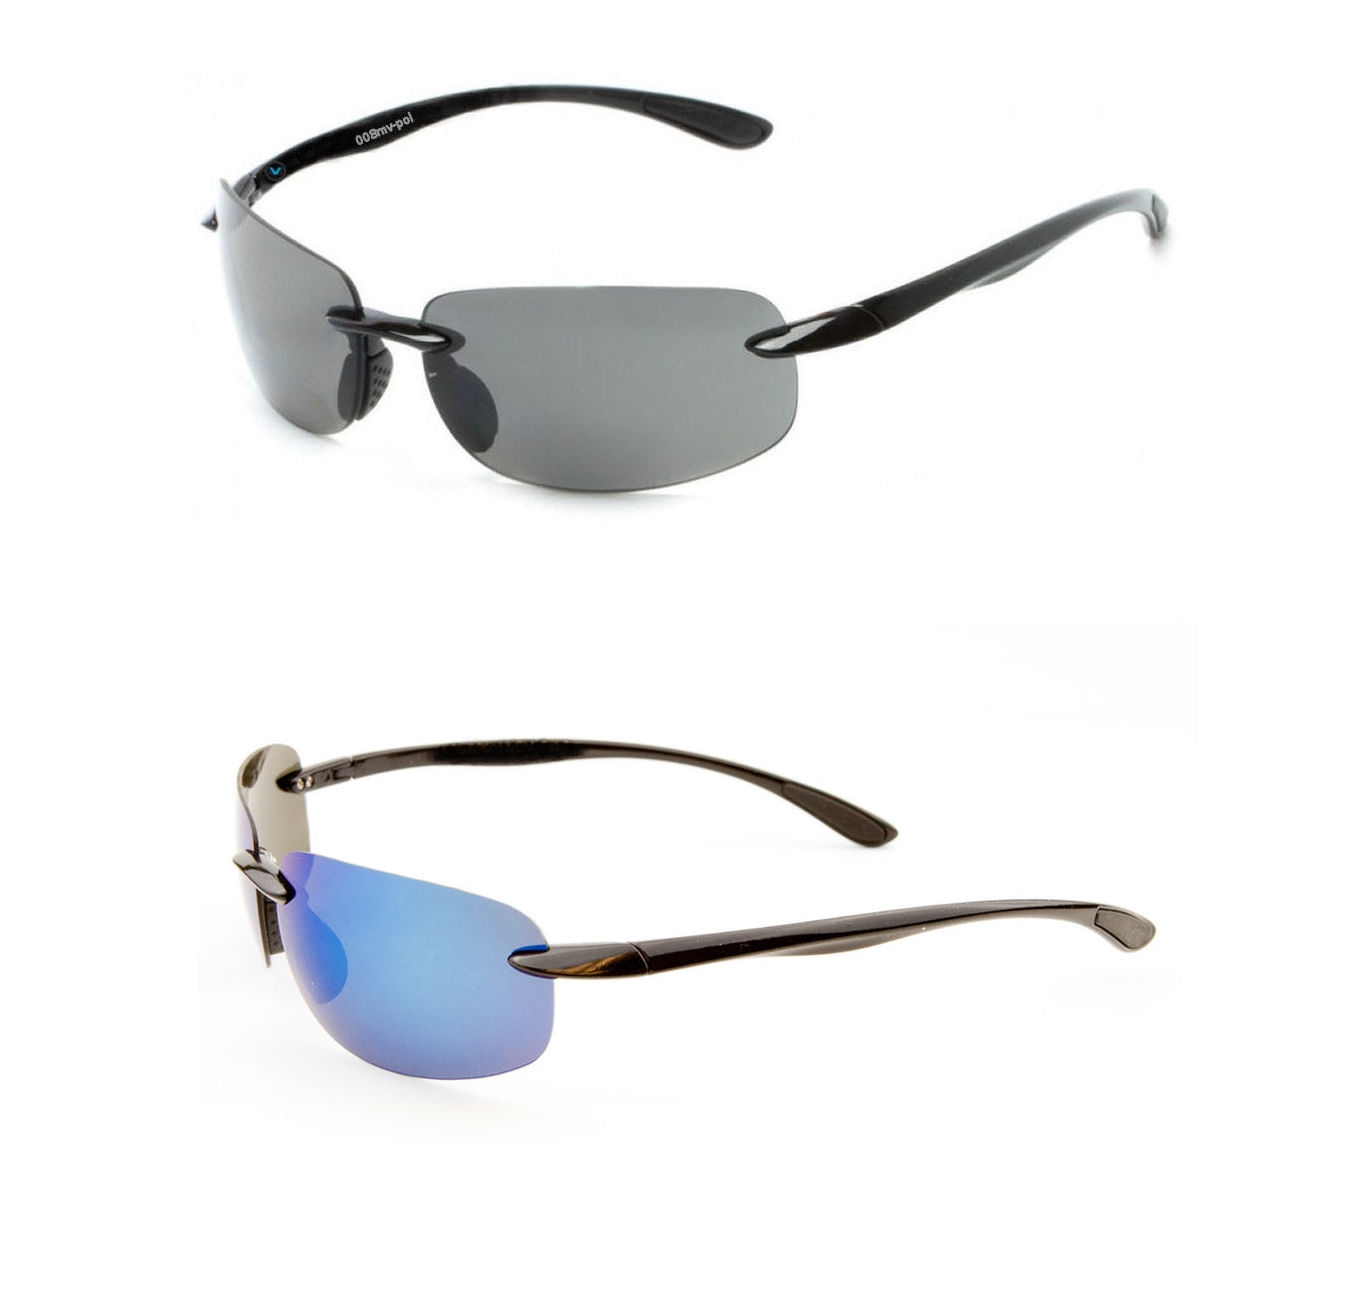 2 Pair of Lovin Maui Casual Wrap Around Polarized Sunglasses - TR90 Frames